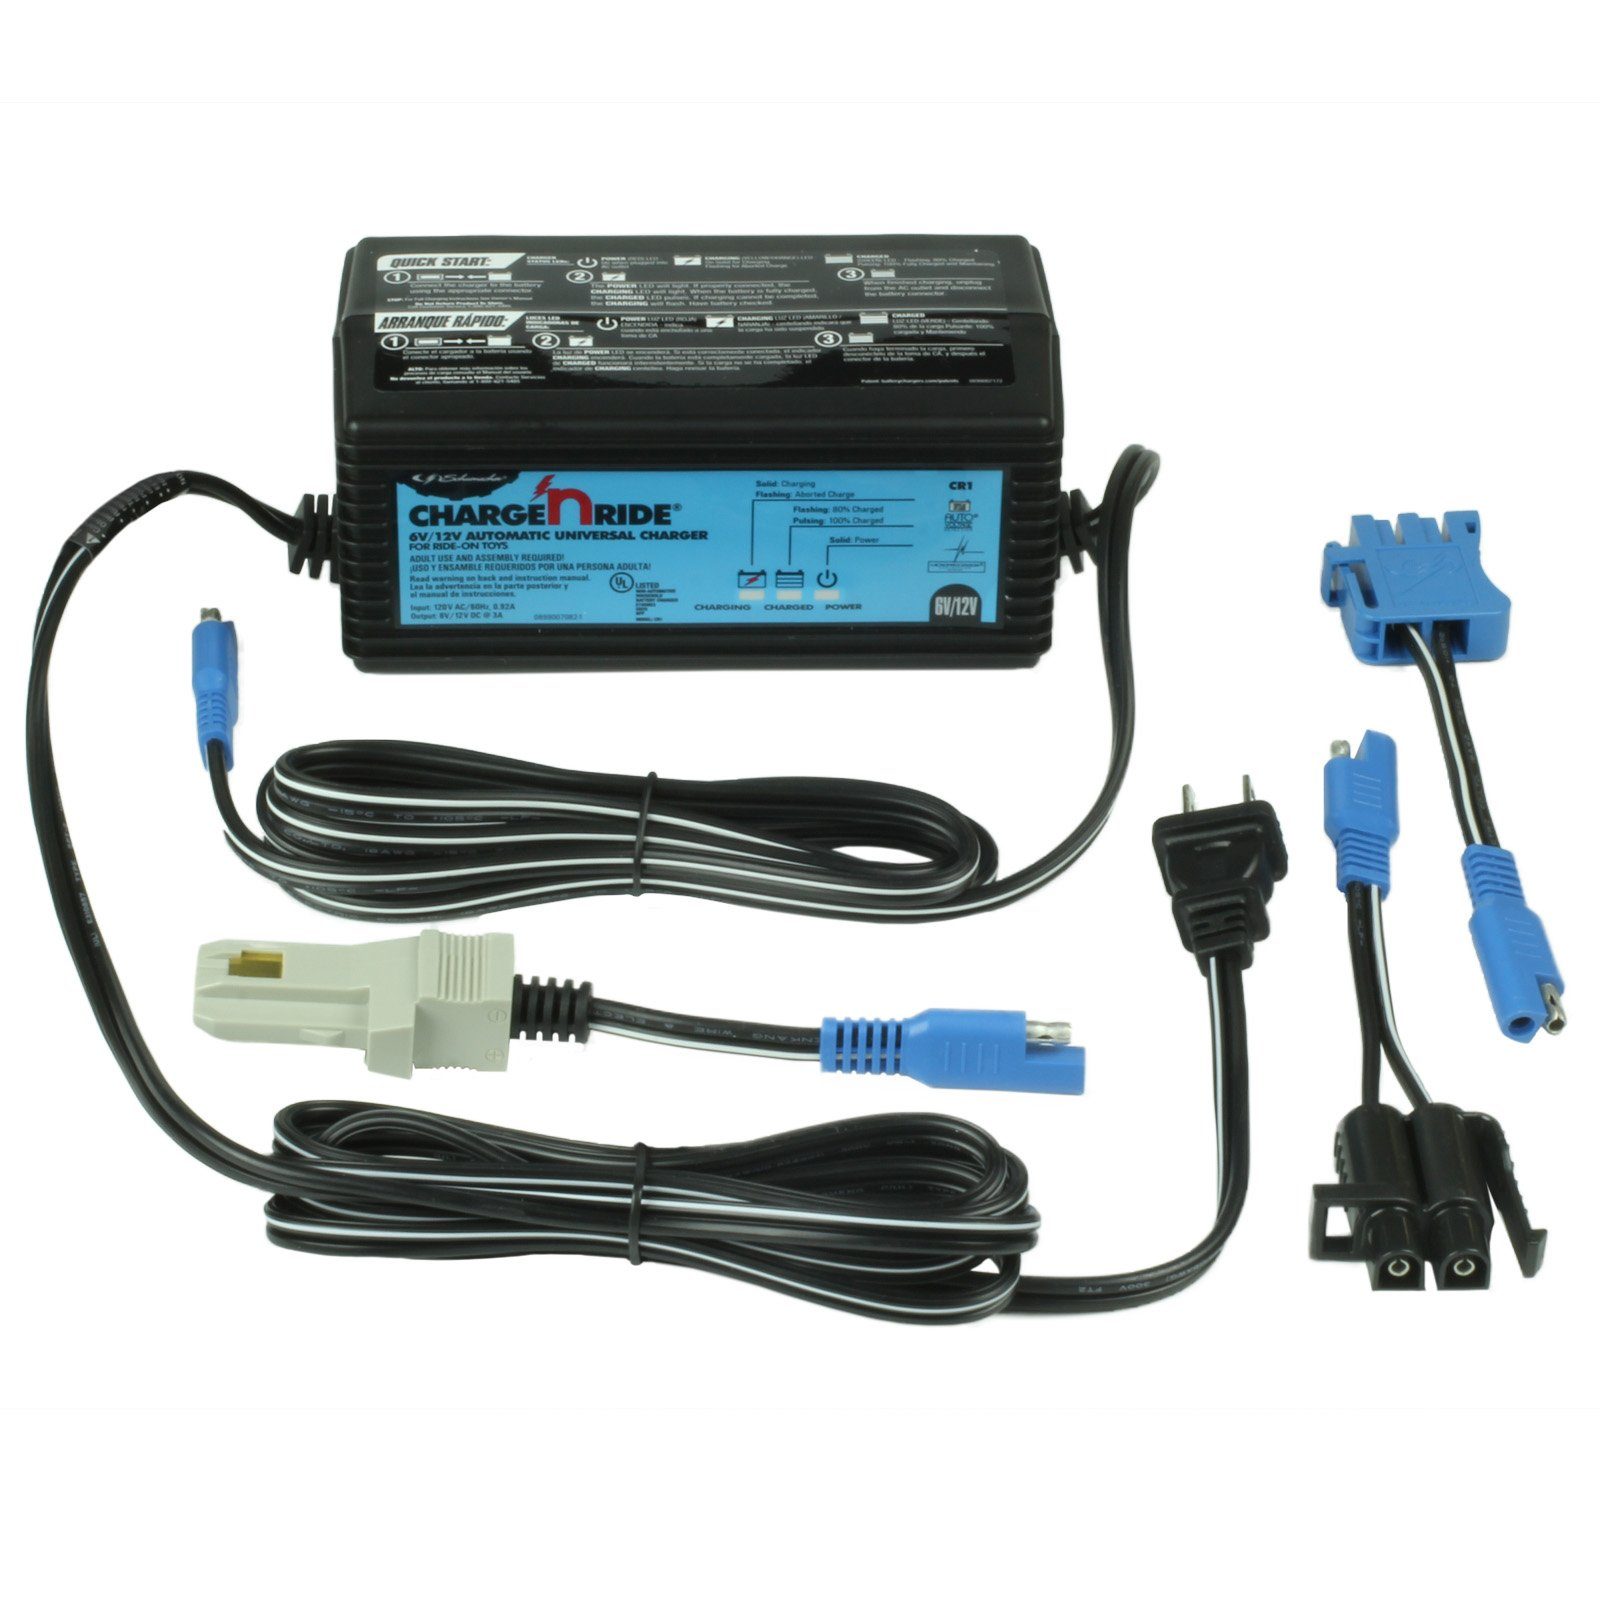 How To Charge A Car Battery Without A Charger >> 3a 6v 12v Universal Charger For Ride On Toys